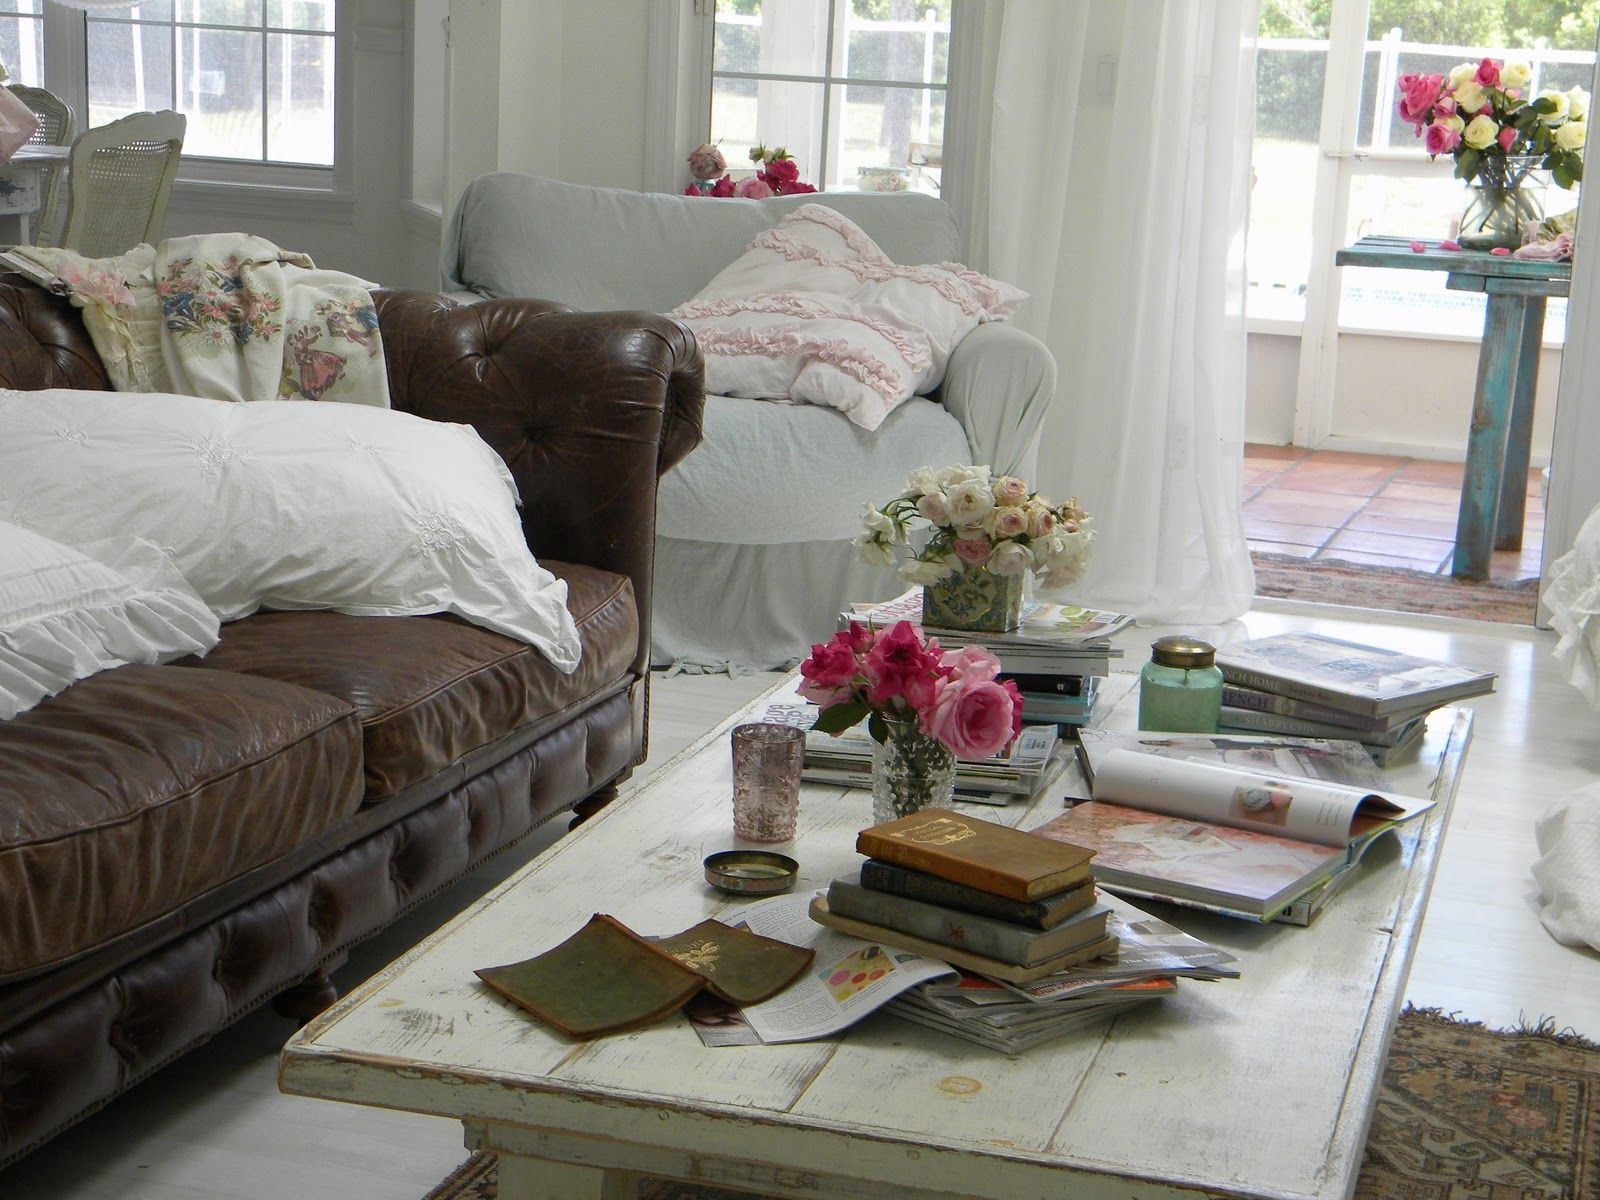 Living Room Decor Ideas Brown Leather Sofa use pale pink flowers with small vase on table, get two white